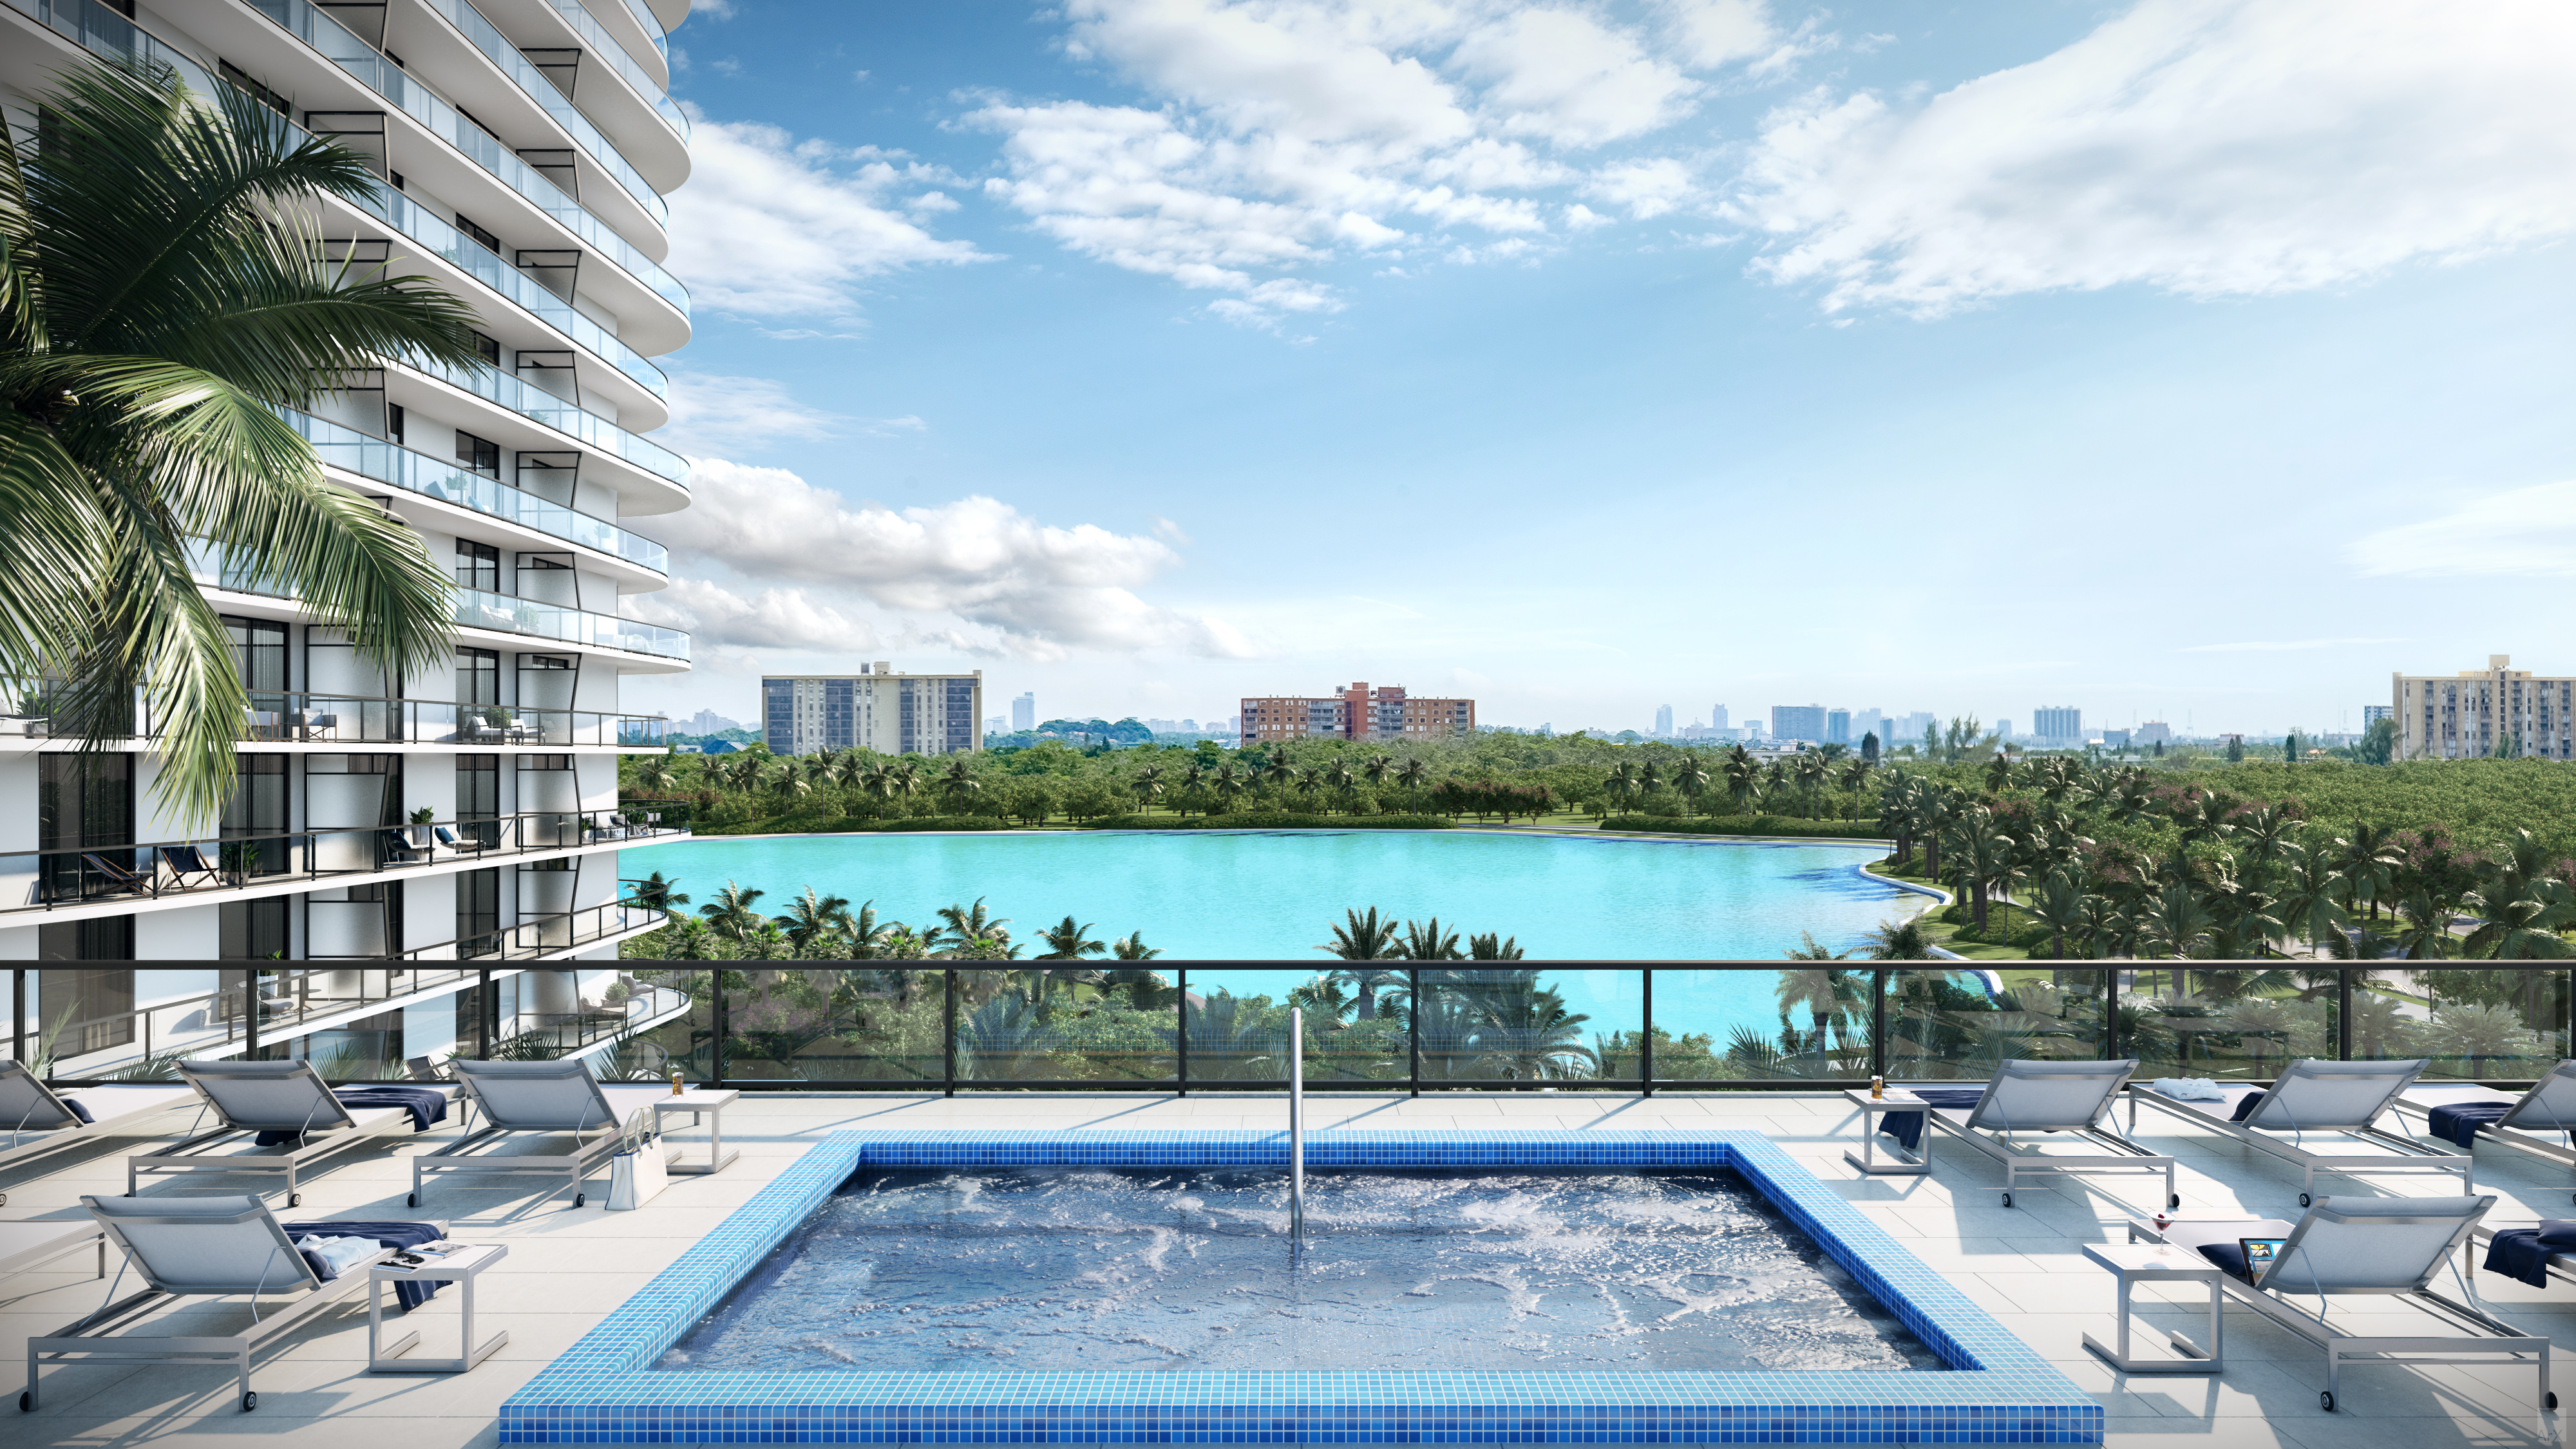 The elevated pool deck at Solé Mia will have a view of South Florida's first Crystal Lagoon